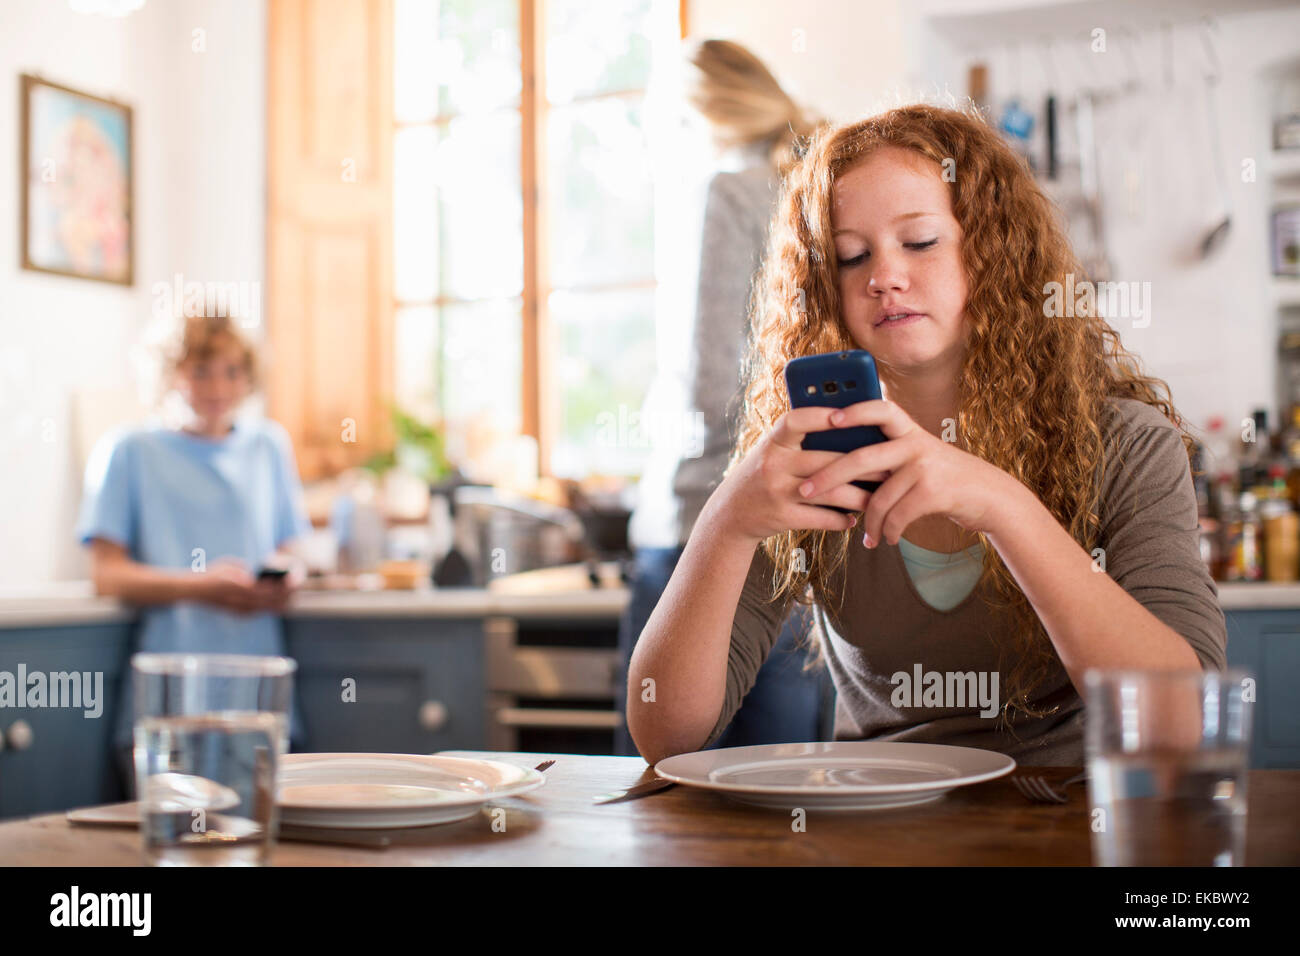 Teenage girl using smartphone à table à manger Photo Stock